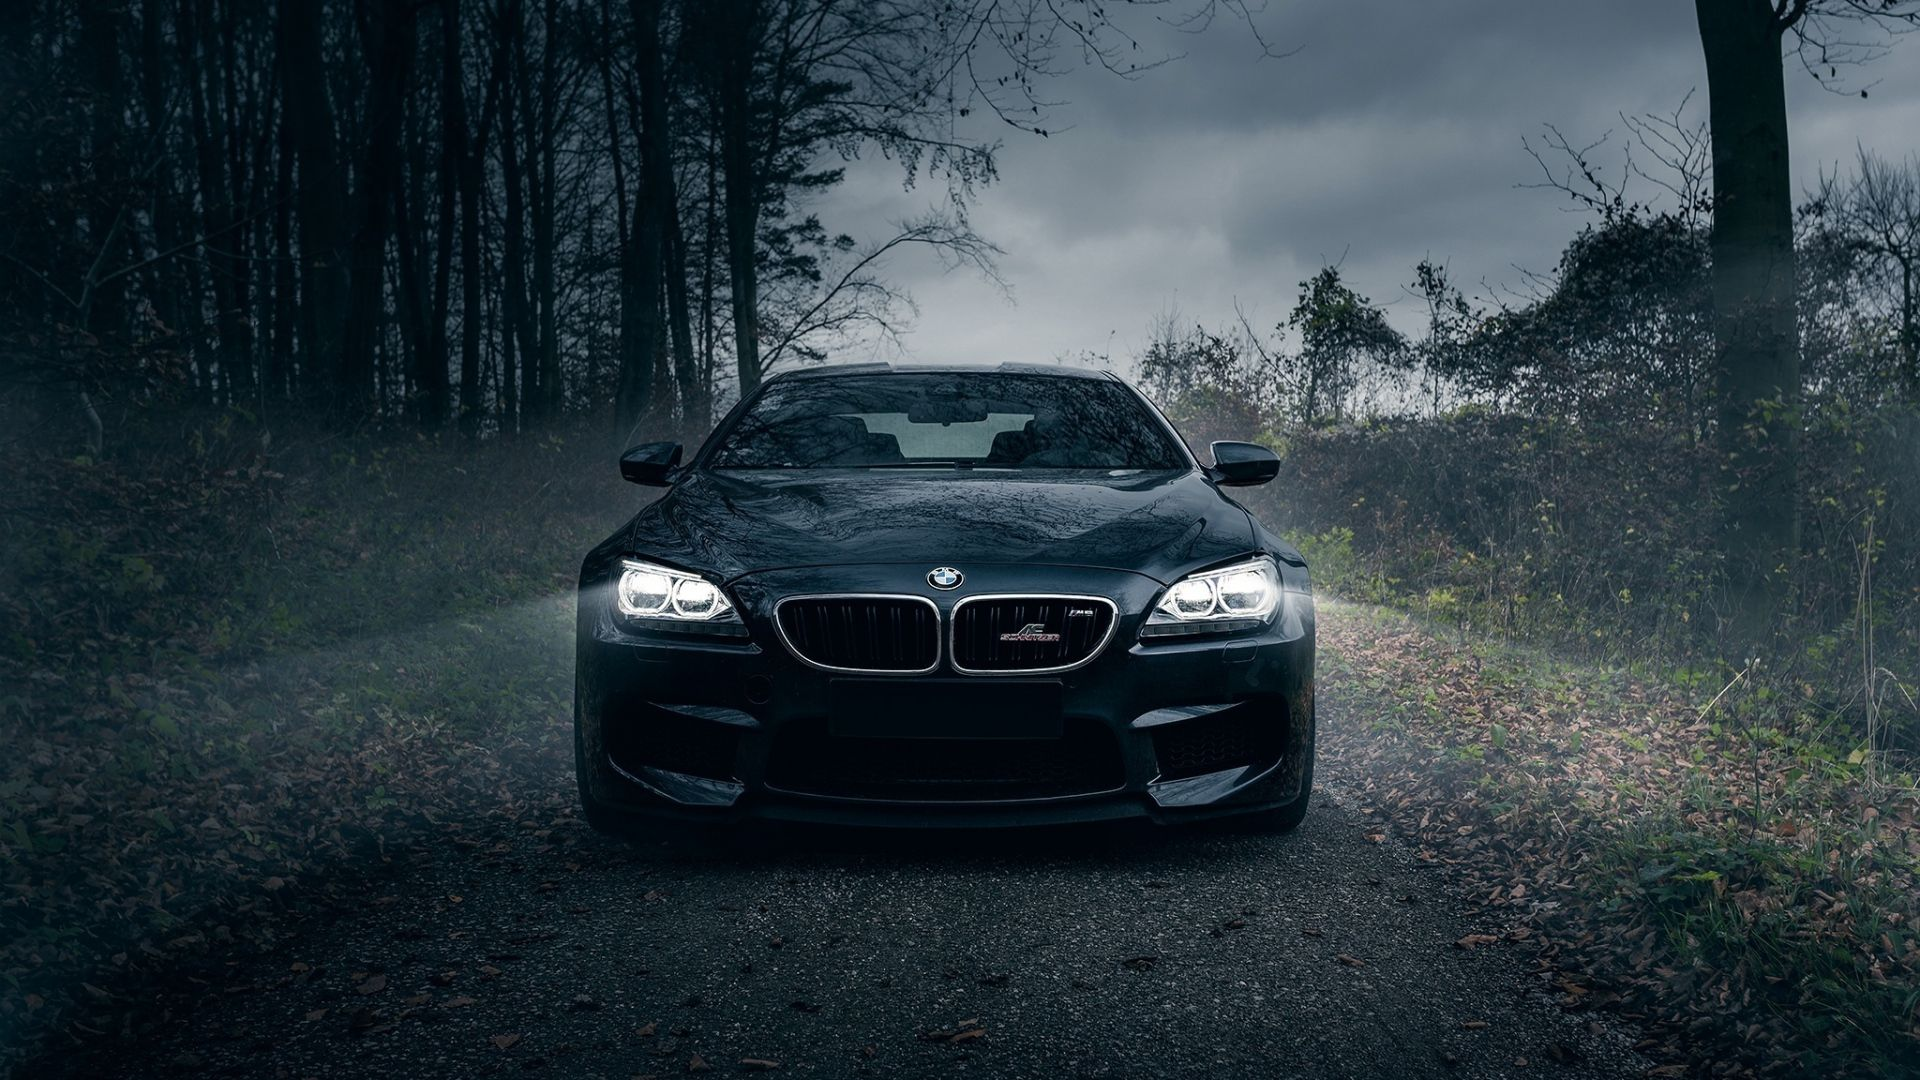 bmw m6 dark   BMW wallpapers   Pinterest   Bmw m6  BMW and Cars bmw m6 dark